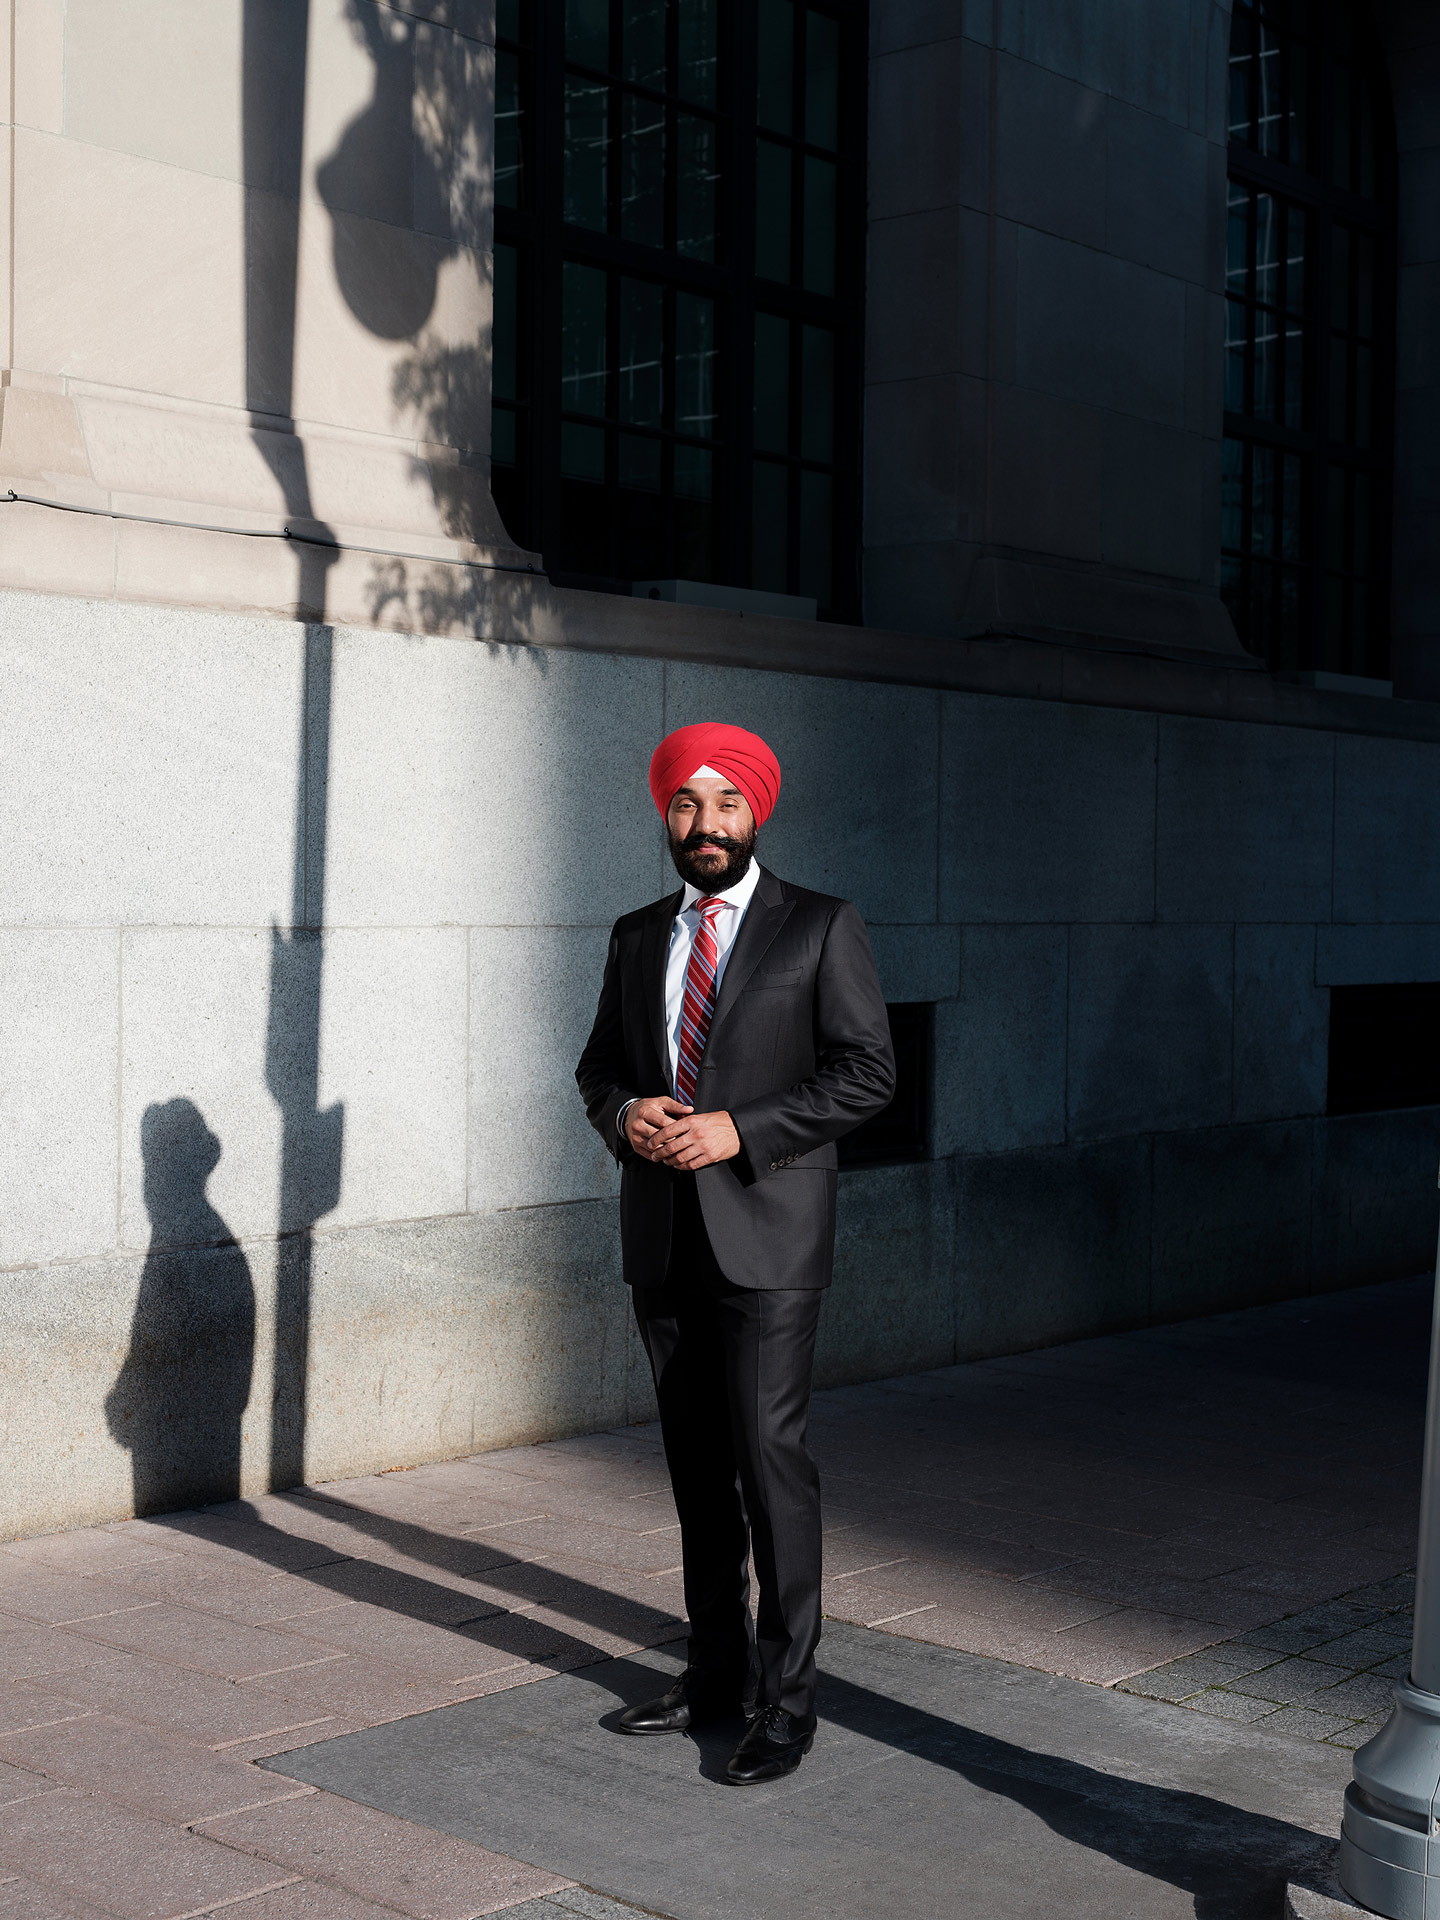 CPA Navdeep Bains in suit smiling wearing red turban in the street by Guillaume Simoneau for Pivot Magazine